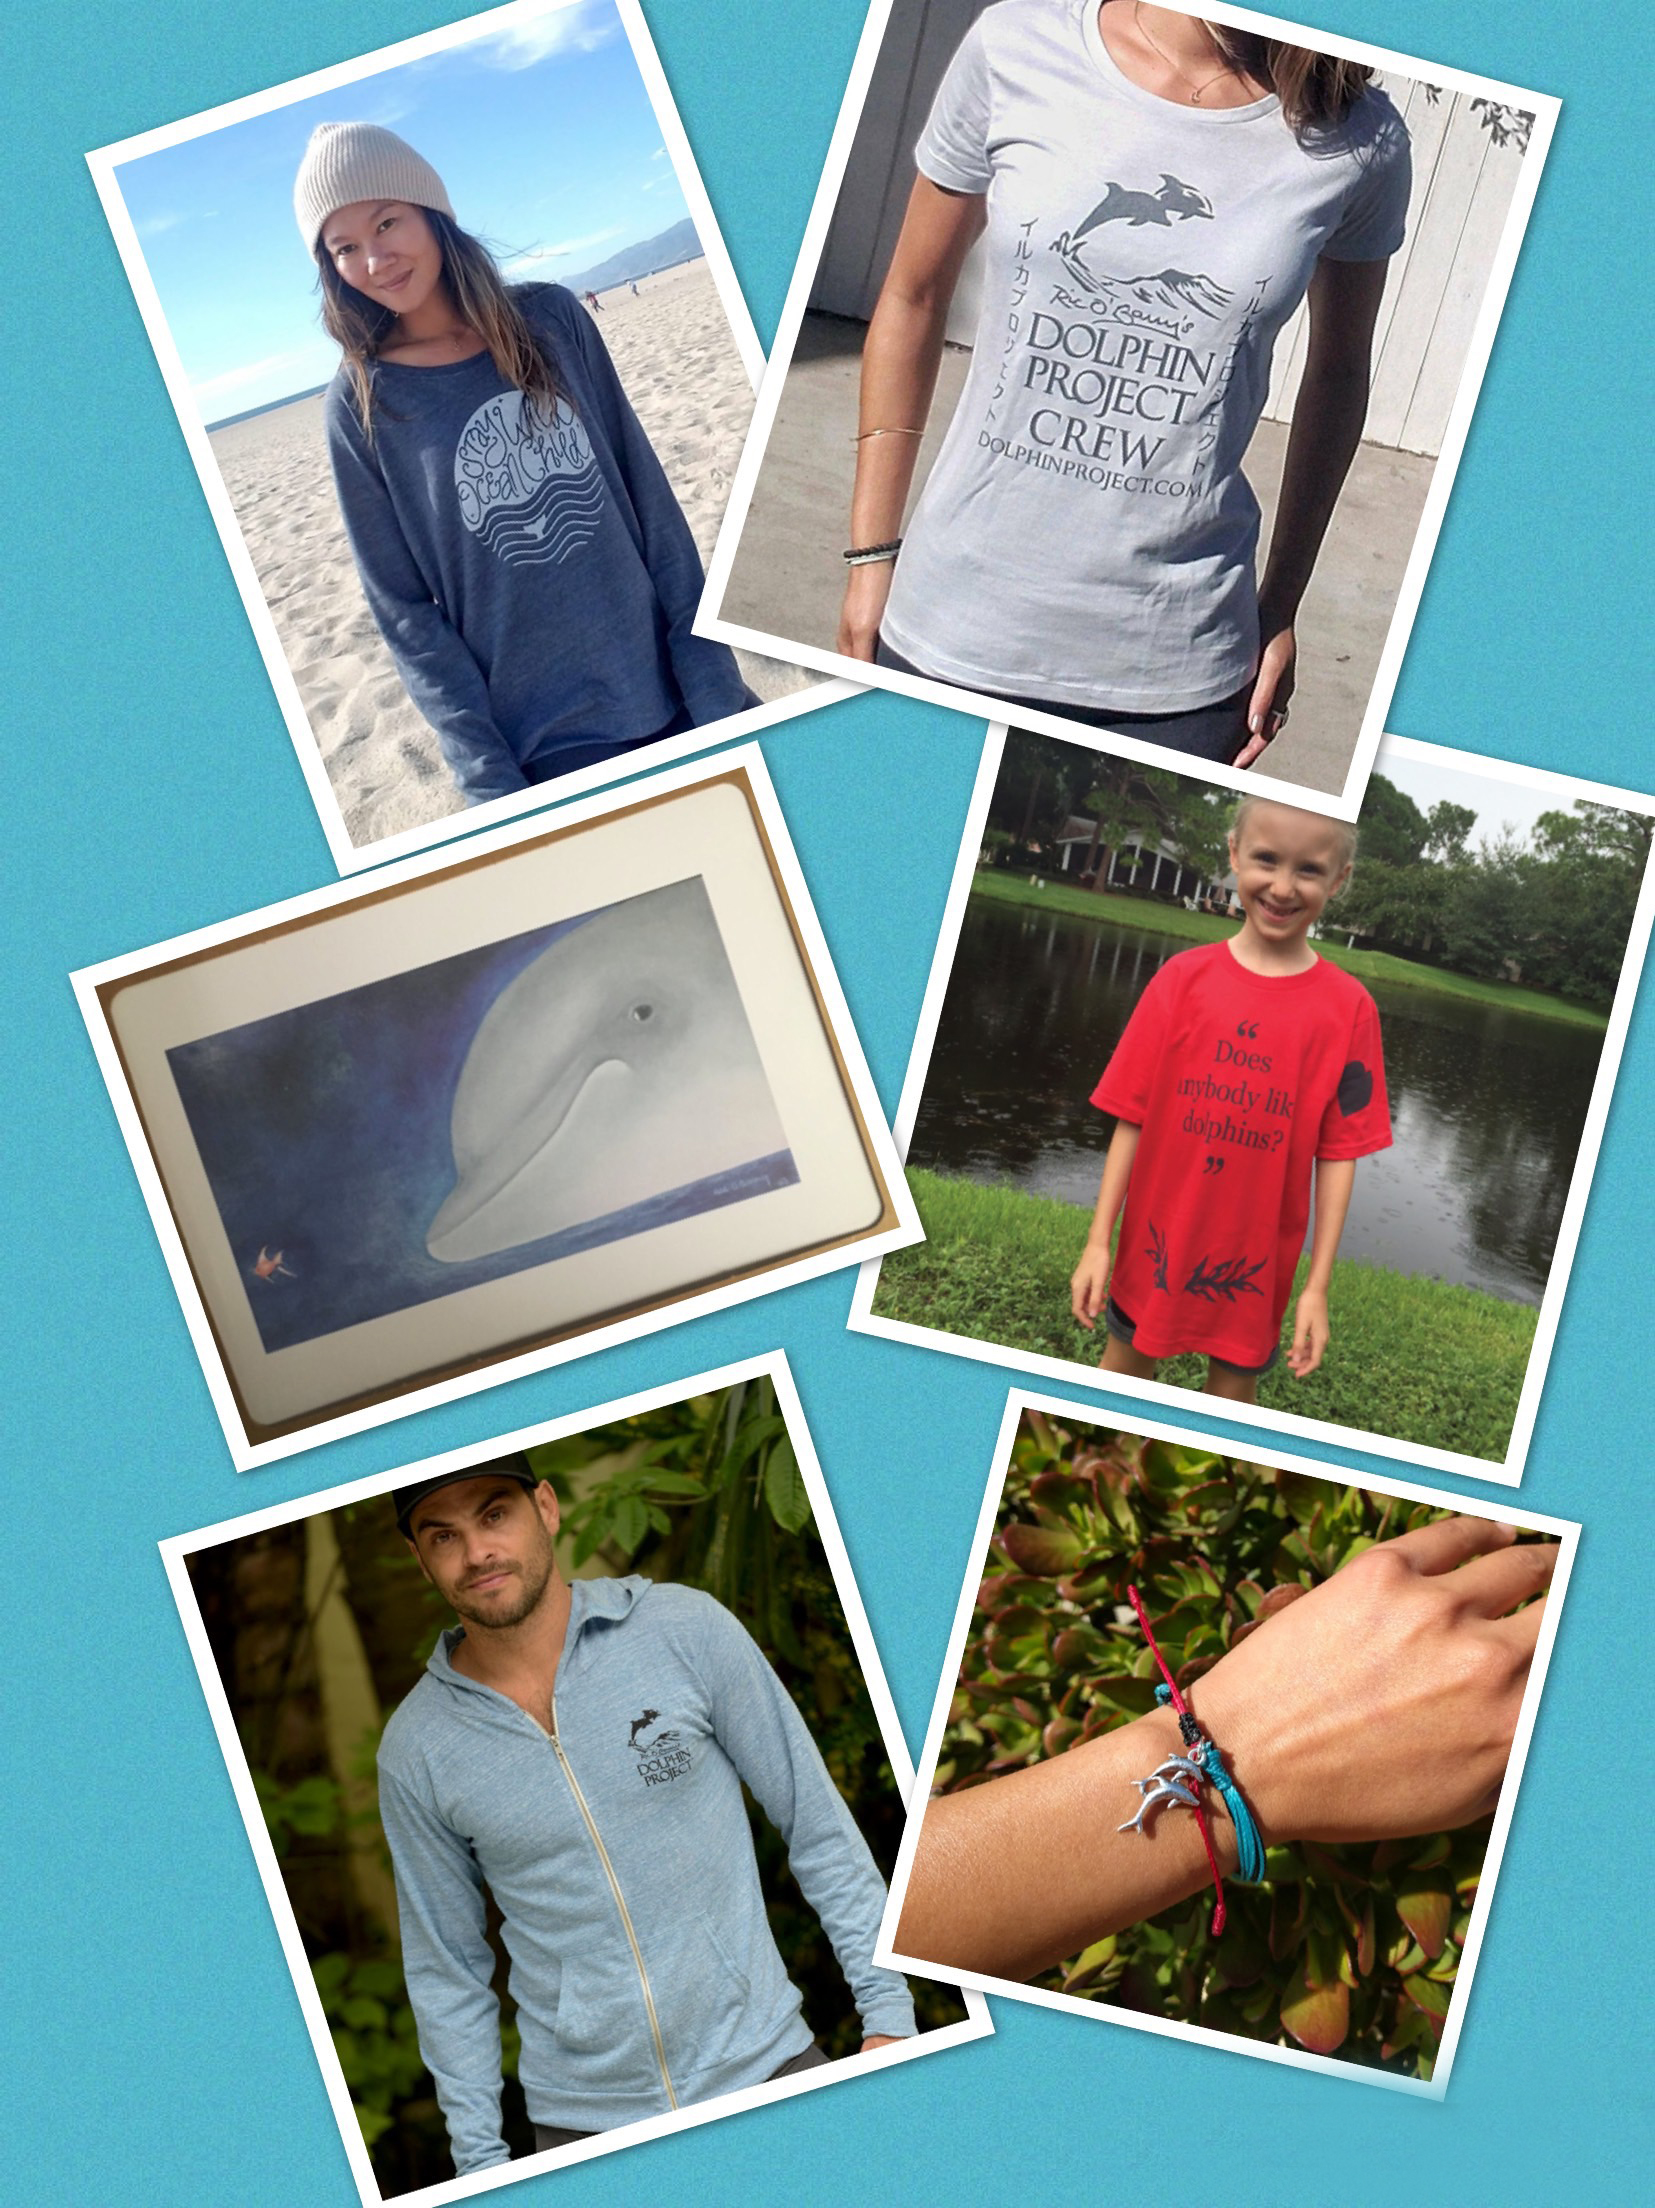 Shop Dolphin Project's authentic gear and be a voice for the voiceless!